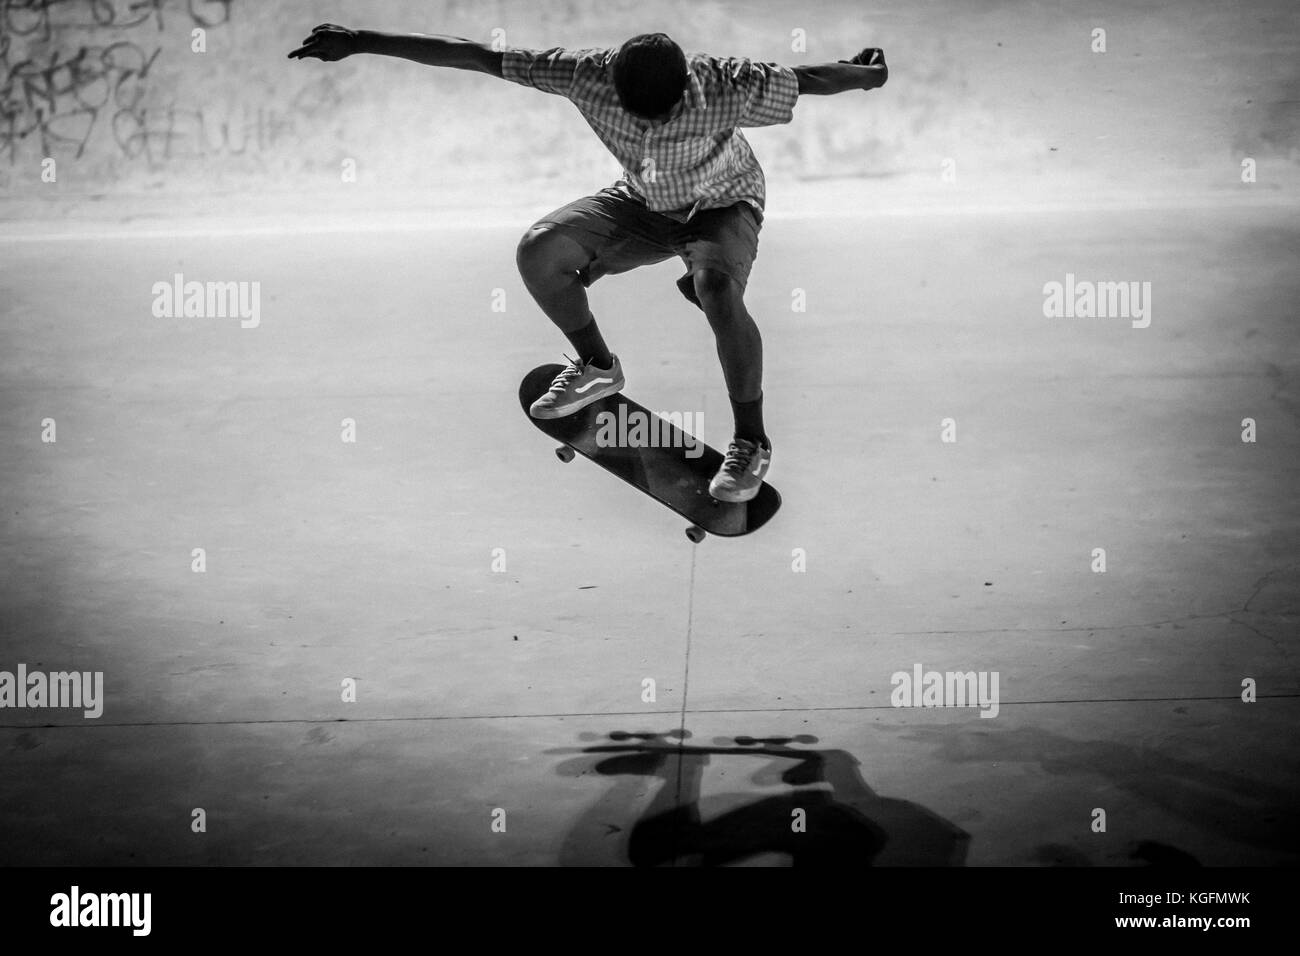 Indian skater doing a trick in a skatepark in Bangalore. - Stock Image